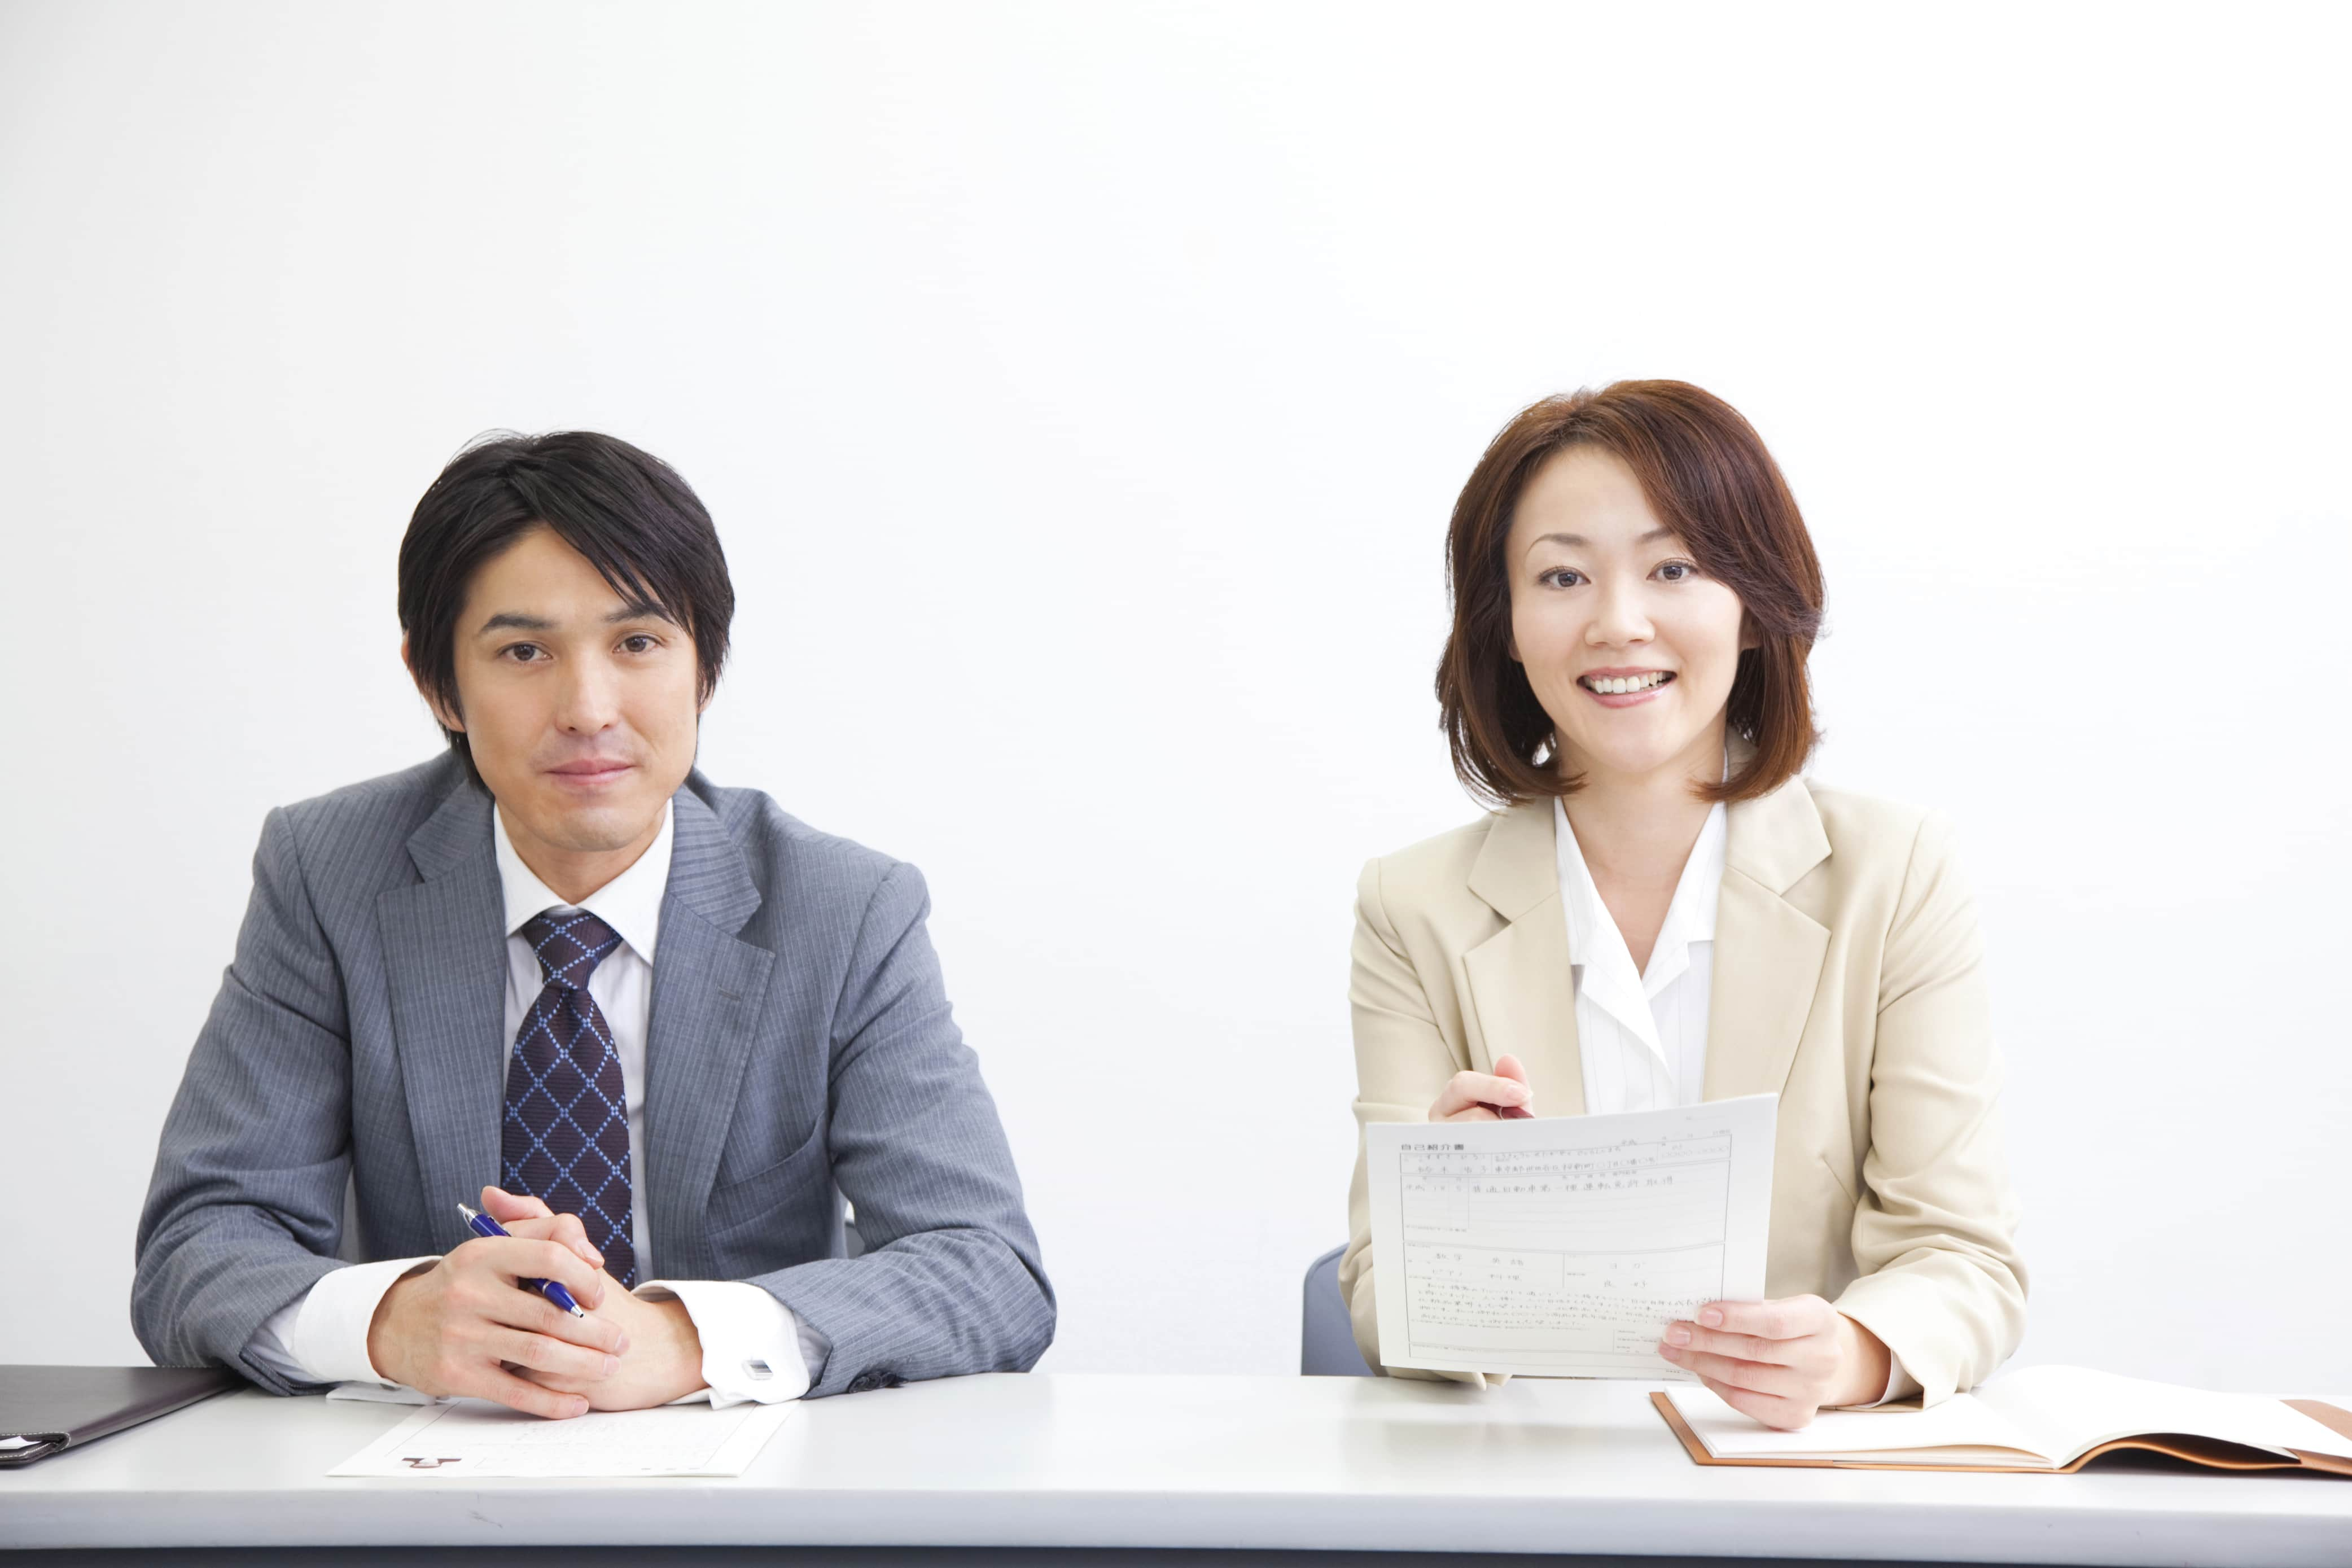 Male and female Japanese interviewers sitting behind a desk